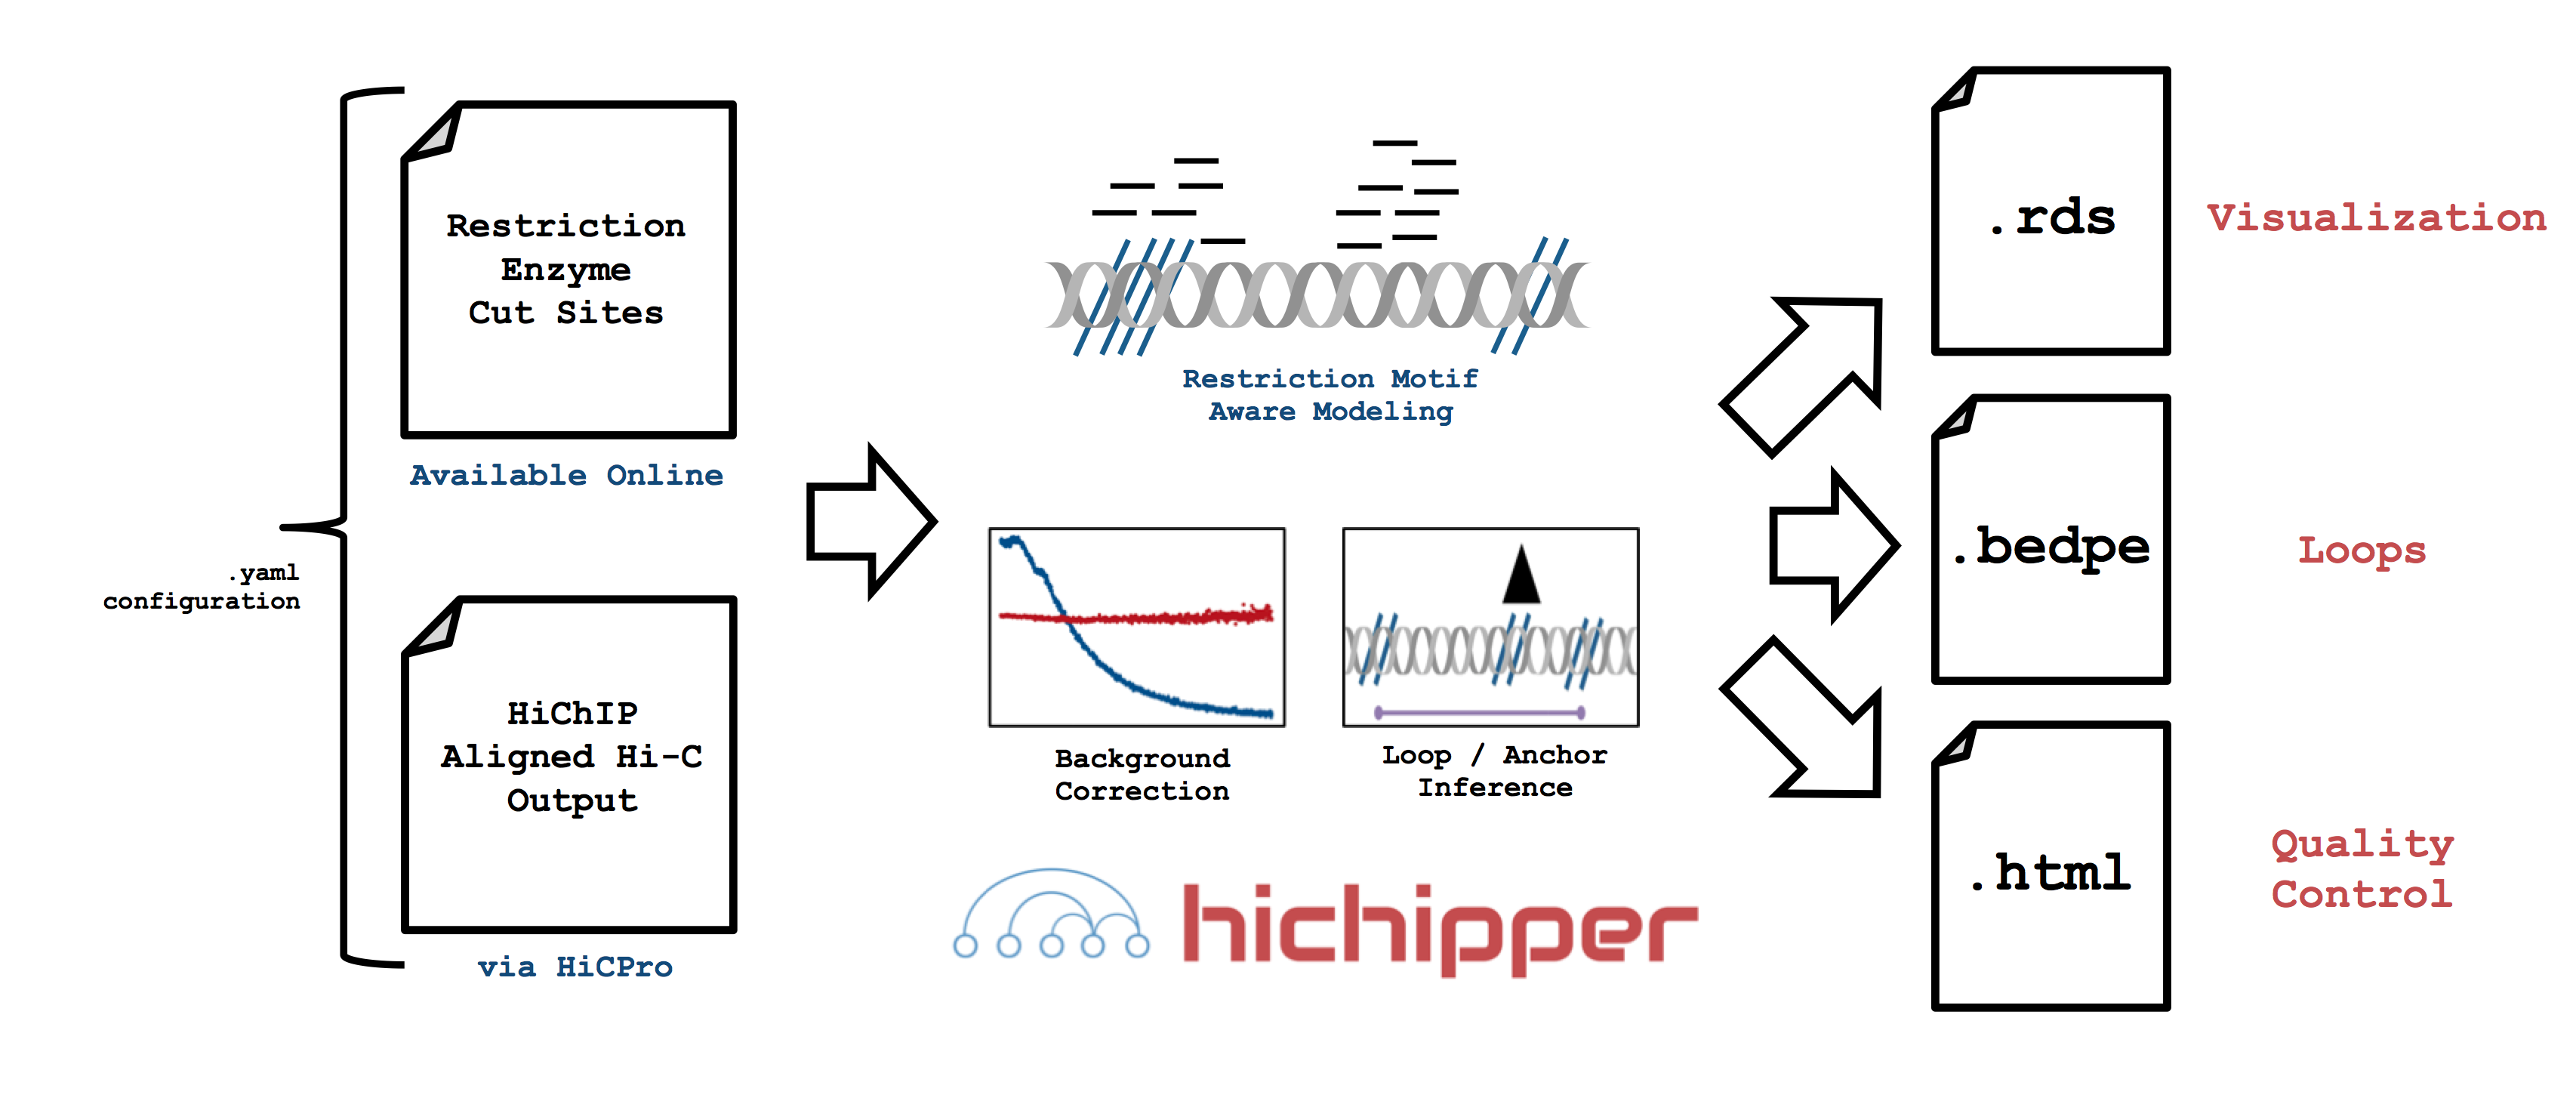 hichipper_overview